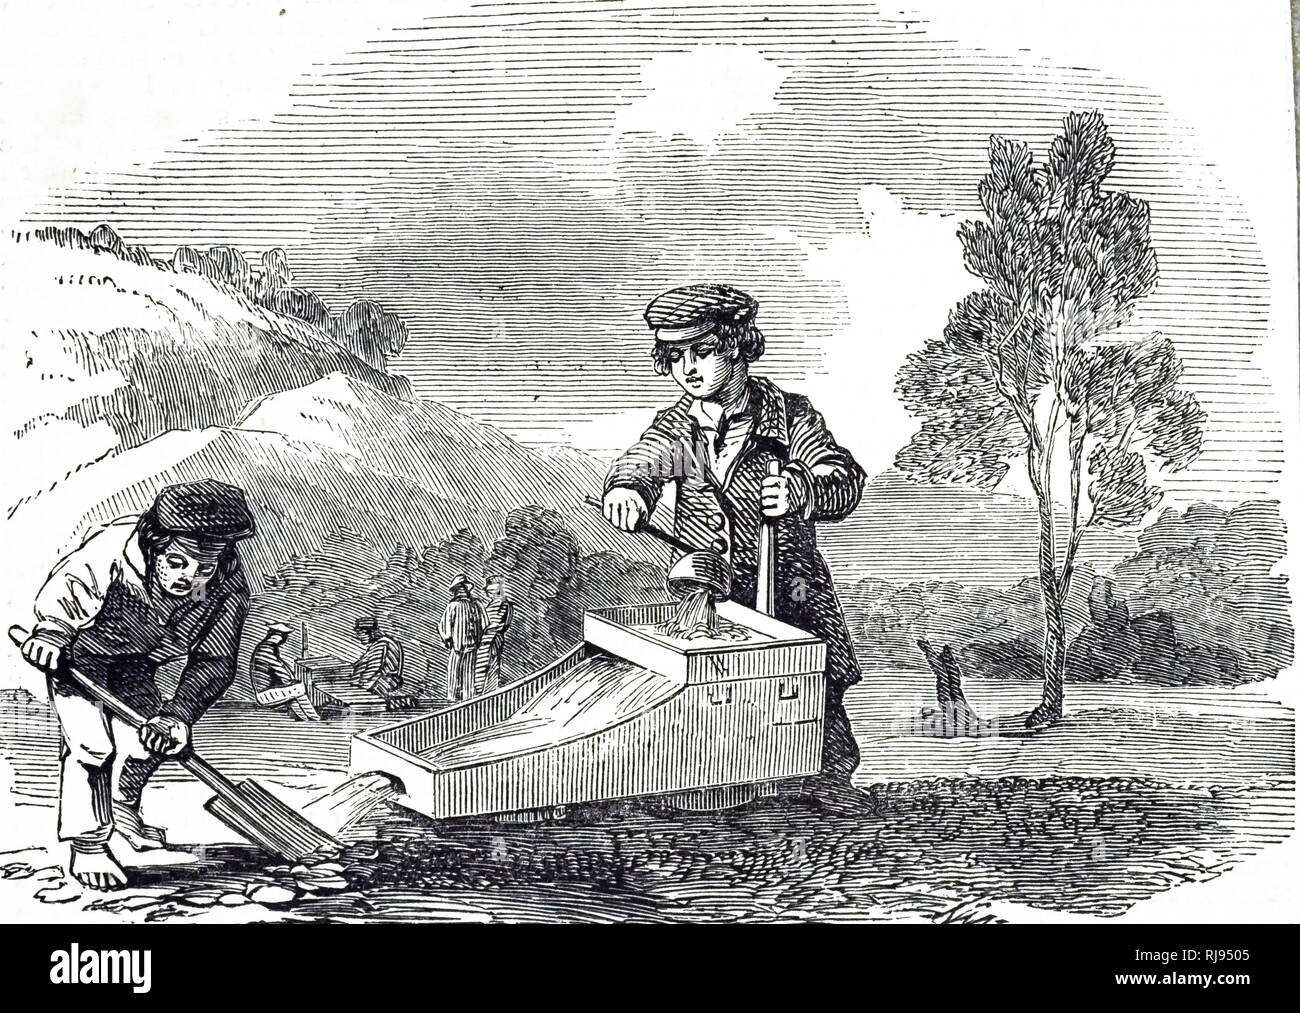 An engraving depicting children cradling for gold during the New South Wales gold rush, Australia. Dated 19th century - Stock Image